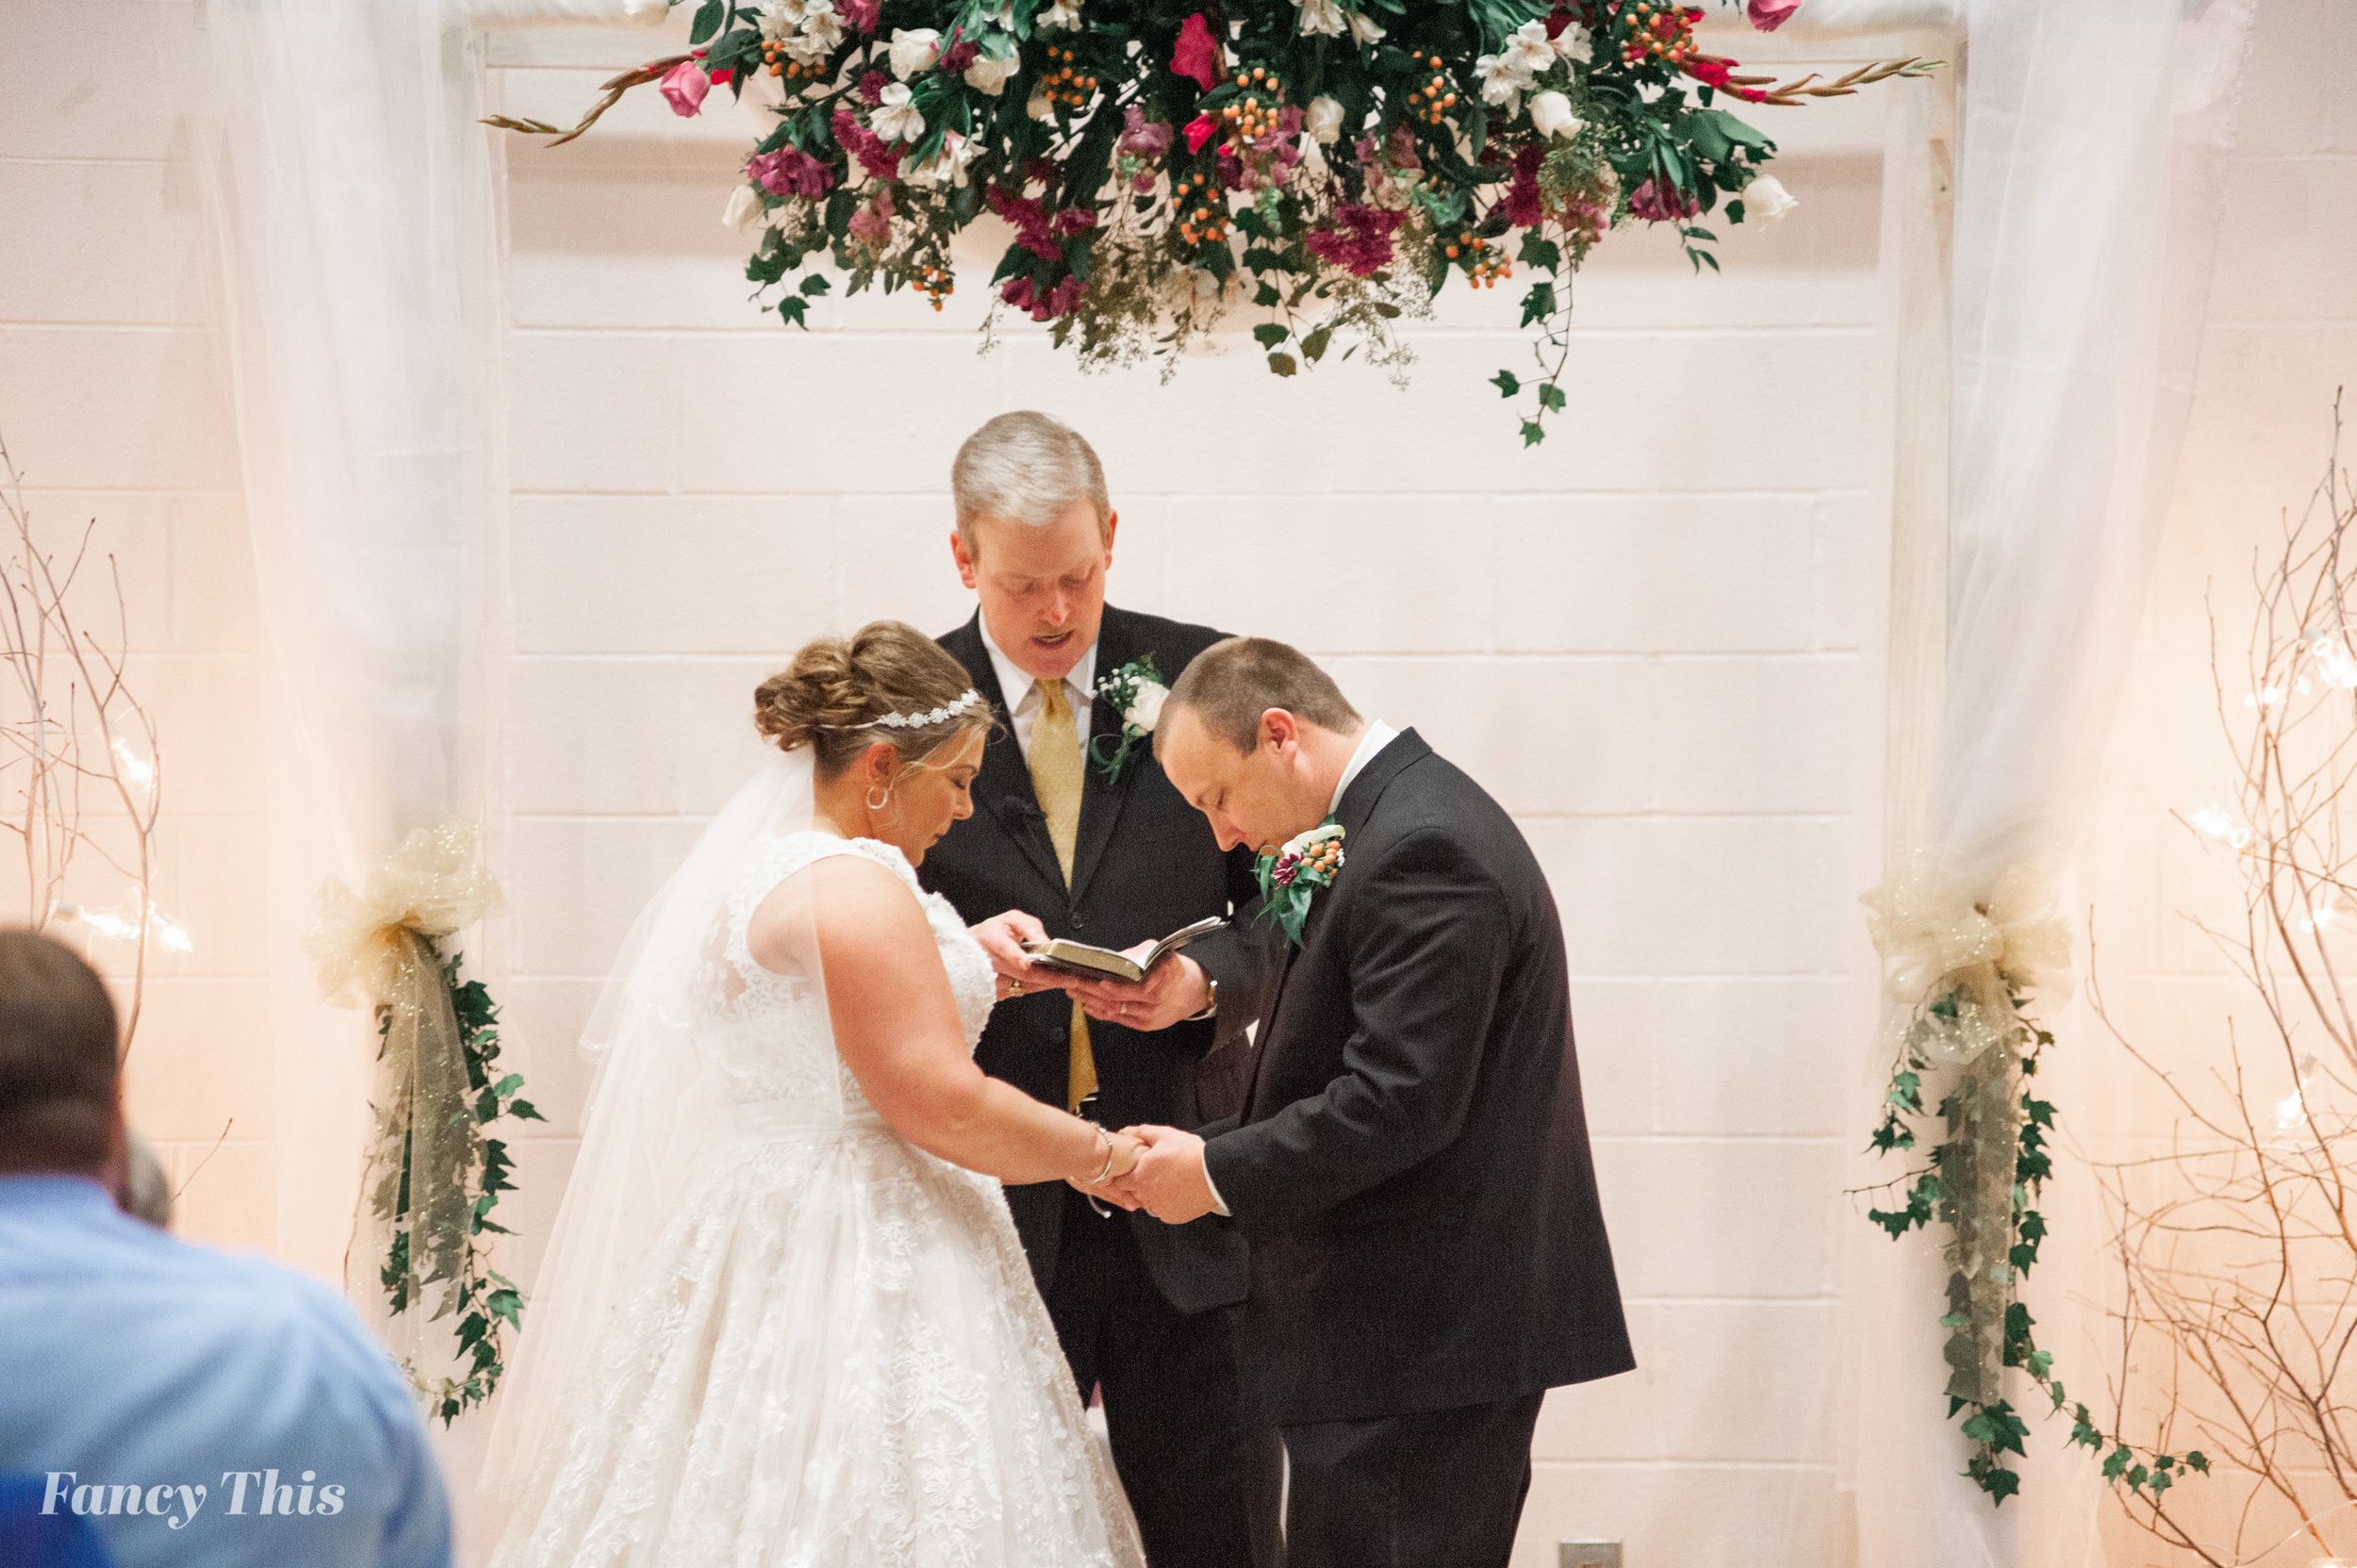 easternncweddingphotographer_williamstonwedding_bobmartinagriculturewedding-271.jpg